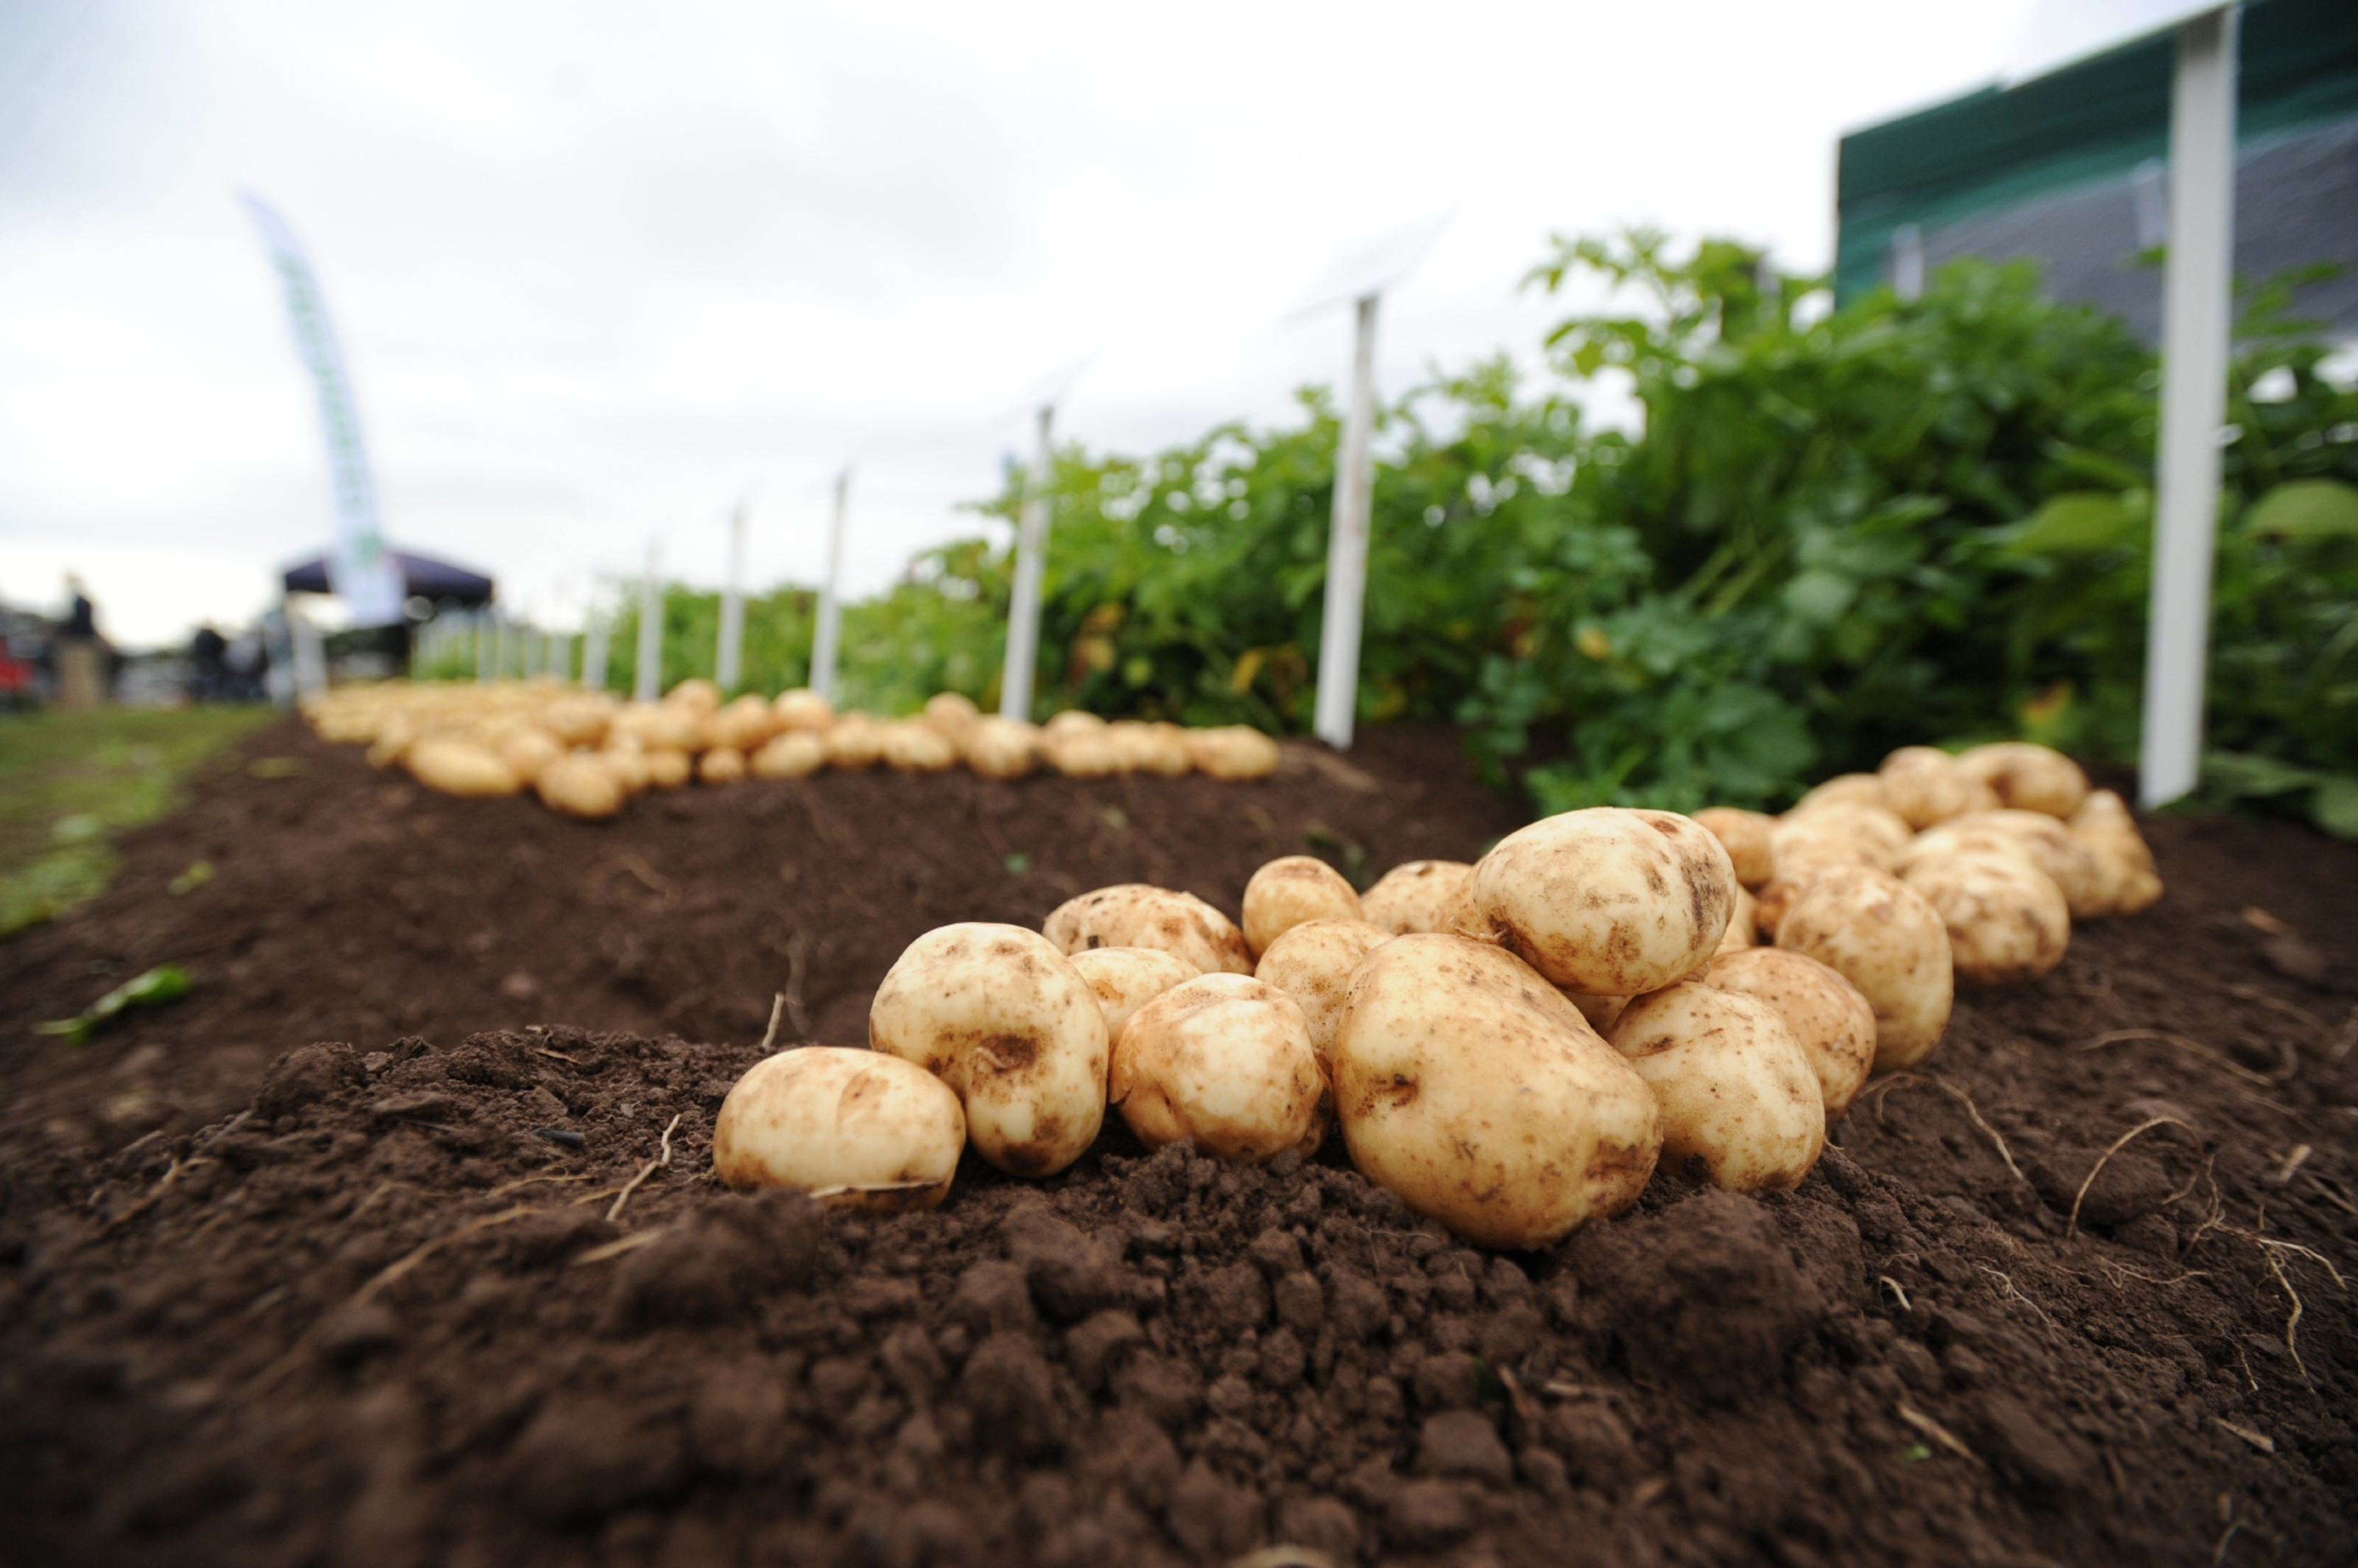 Brexit uncertainty has created a rapidly changing marketplace for potatoes